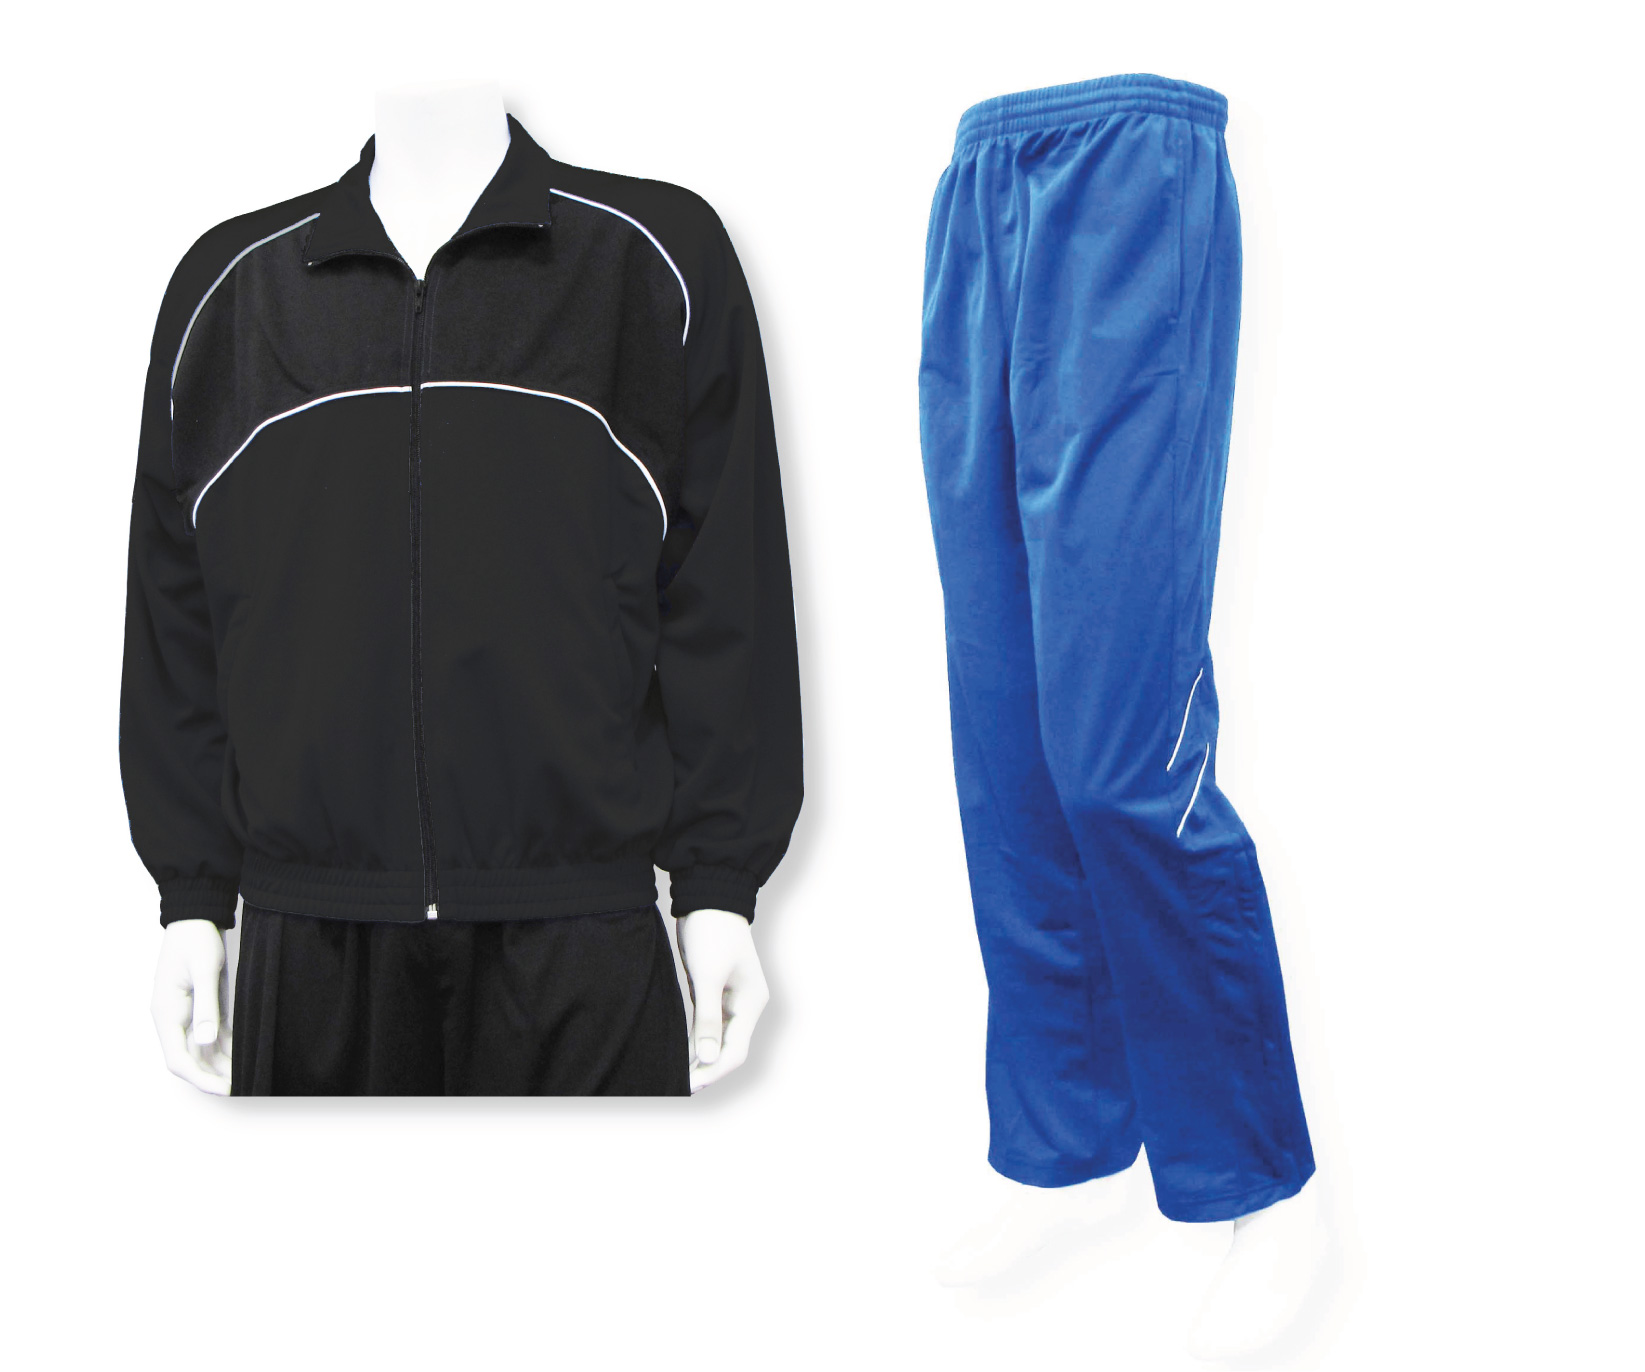 Men's casual warmup set black jacket and royal pants by Code Four Athletics